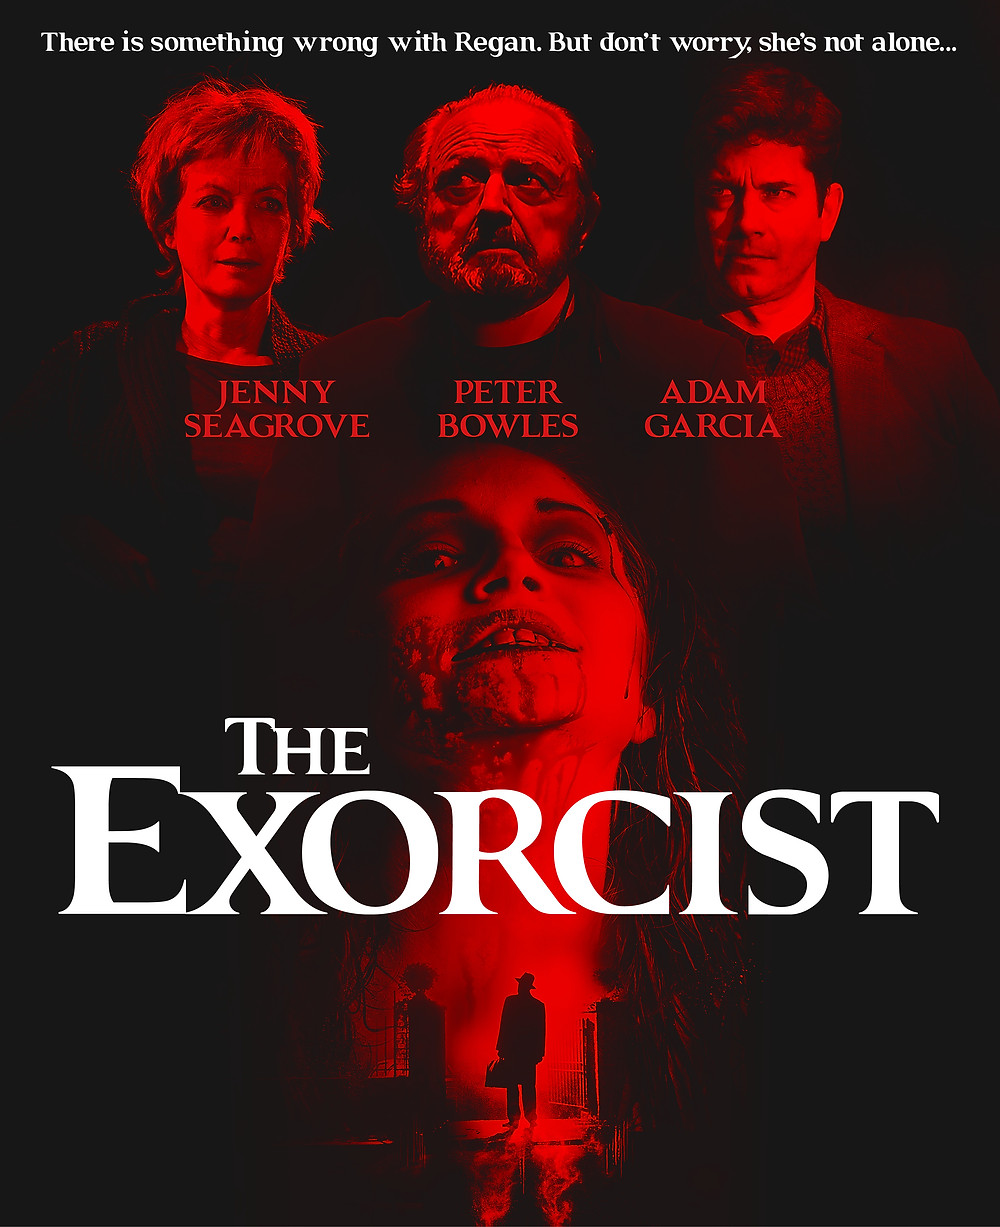 The Exorcist Live poster